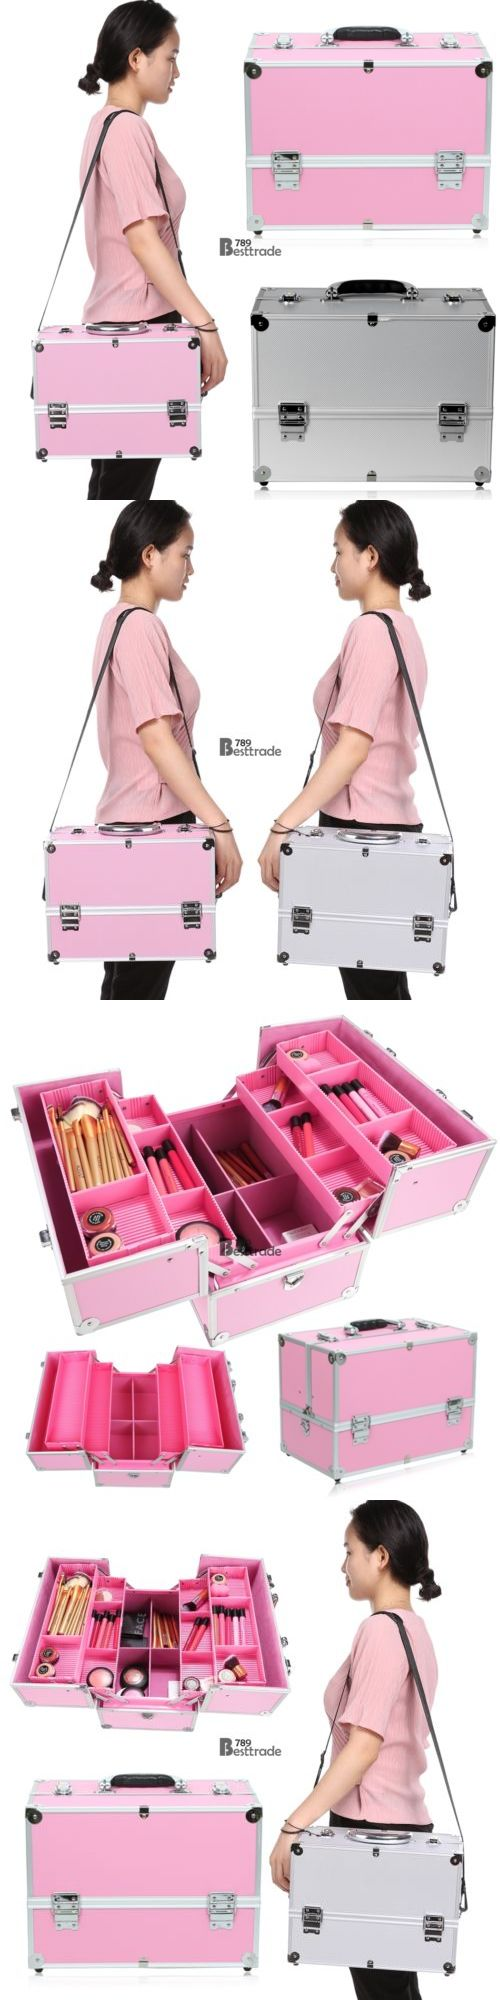 Makeup Bags and Cases: Homdox Makeup Storage Box Train Make Up Cosmetic Organizer Beauty Case 3 Floors -> BUY IT NOW ONLY: $30.45 on eBay!